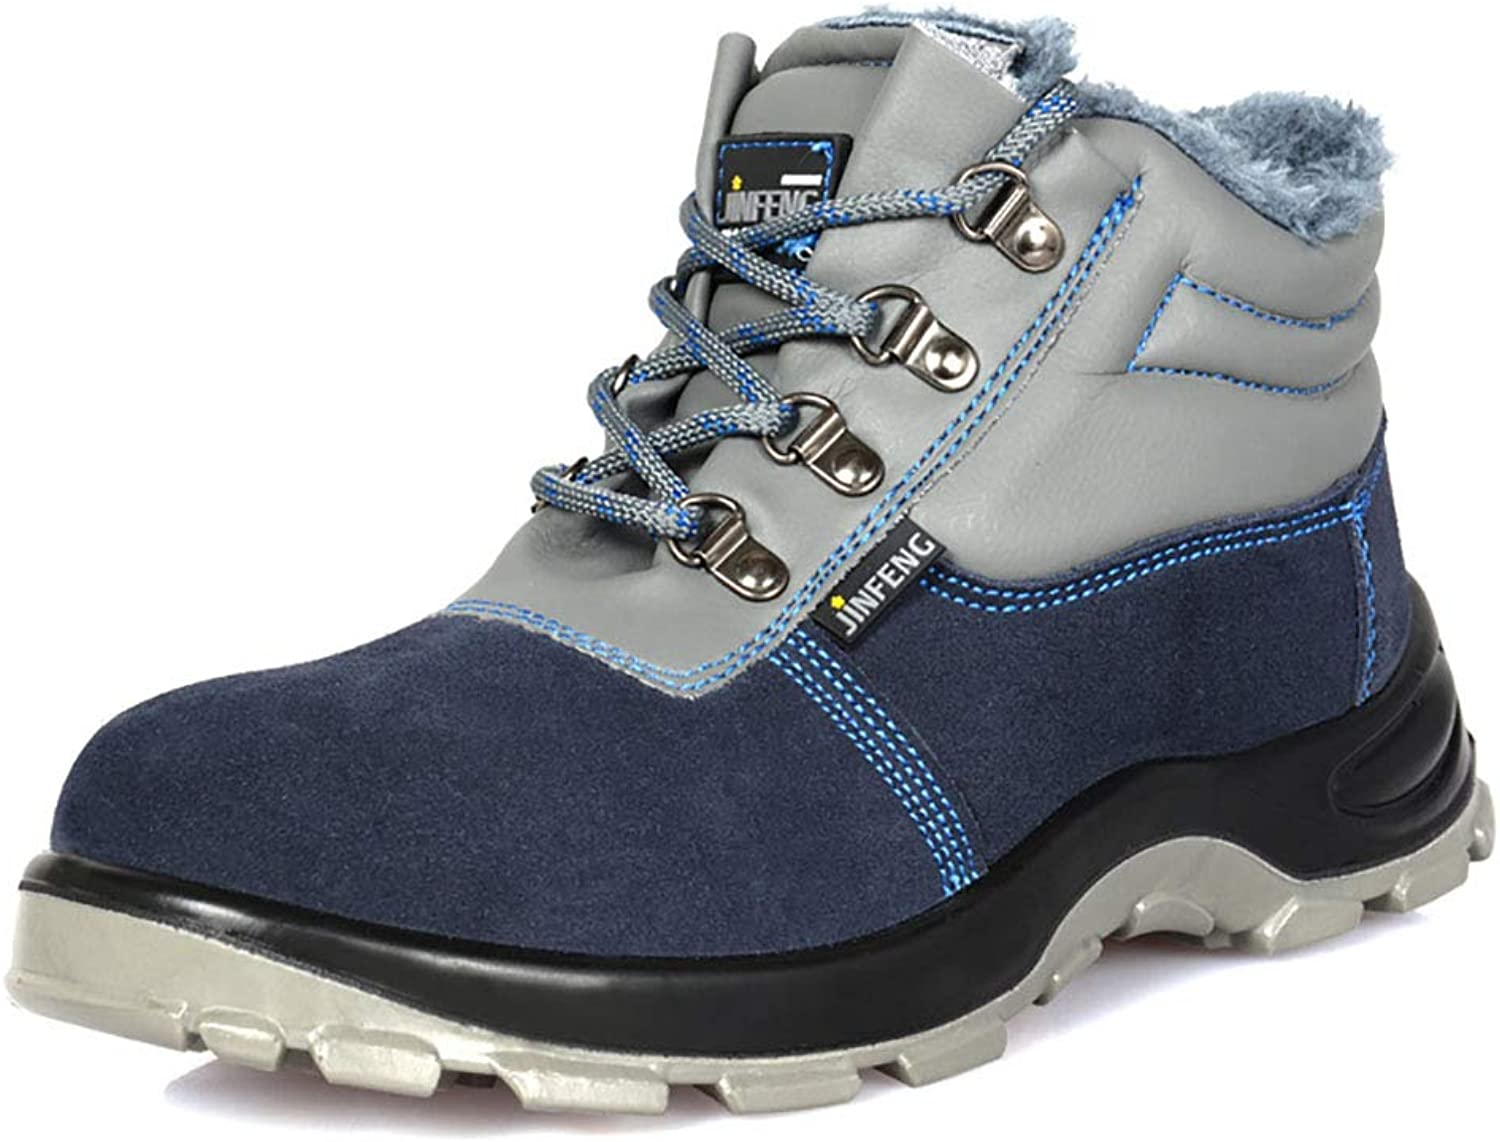 Yxwxz Gym wear for men Men's Waterproof Safety Trainer Ultra Lightweight Steel Toe Cap Work shoes Ankle Hiker on cloud running shoes (Size   39)